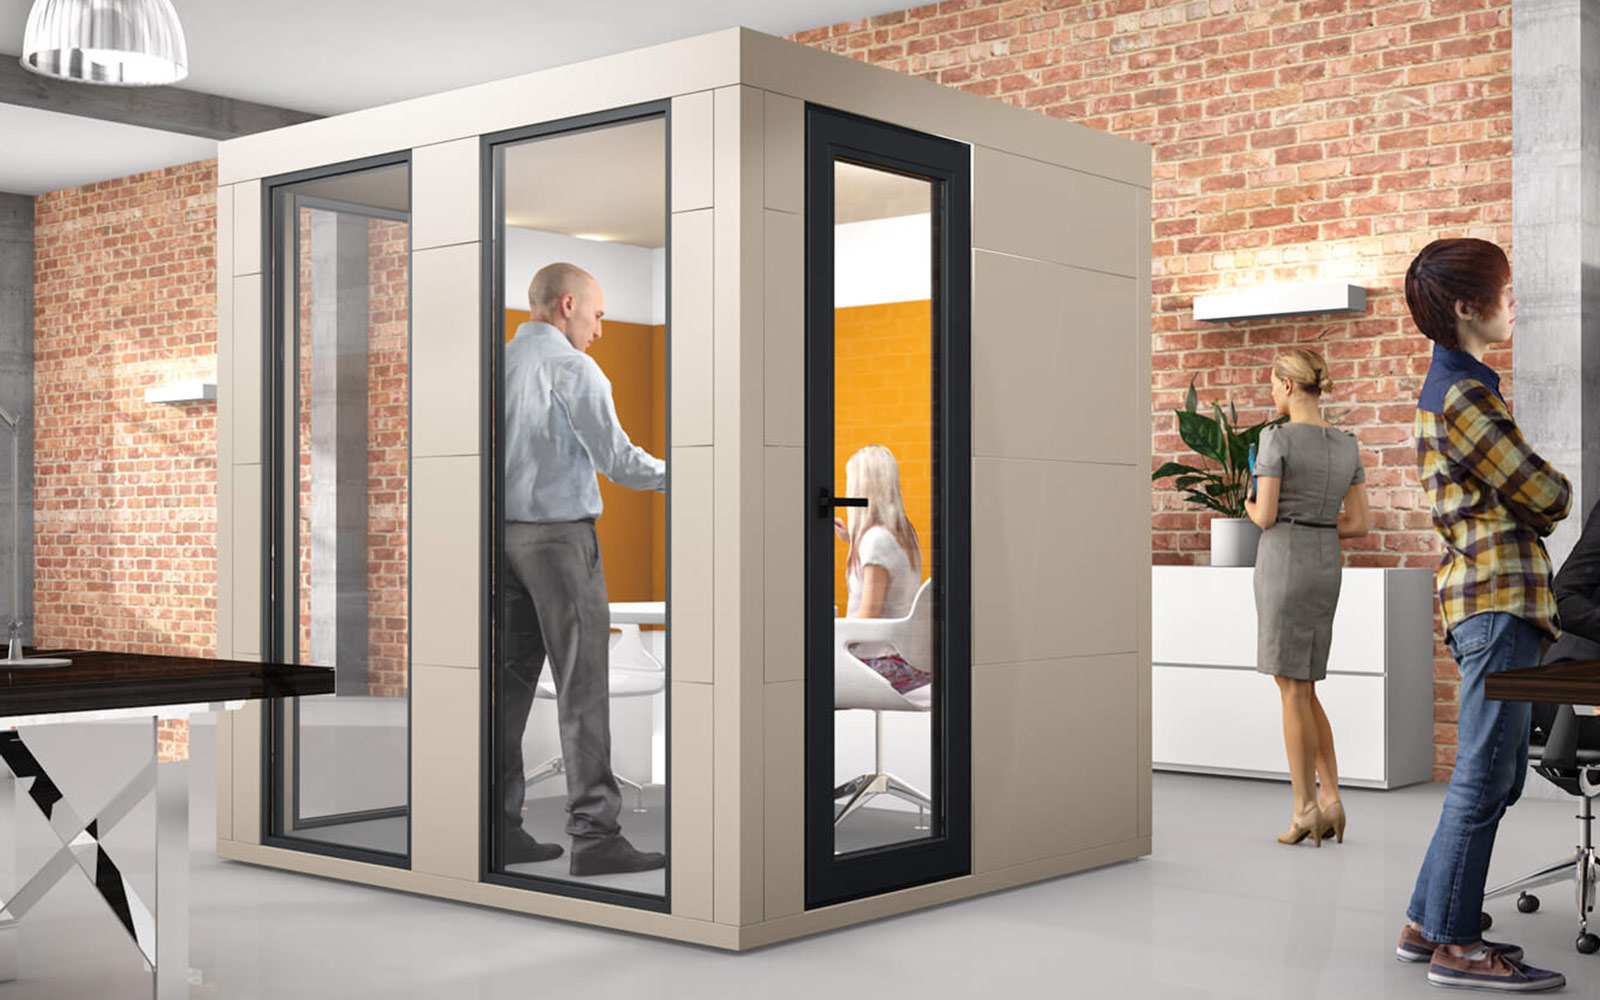 Raum-in-Raum-System von Office Bricks